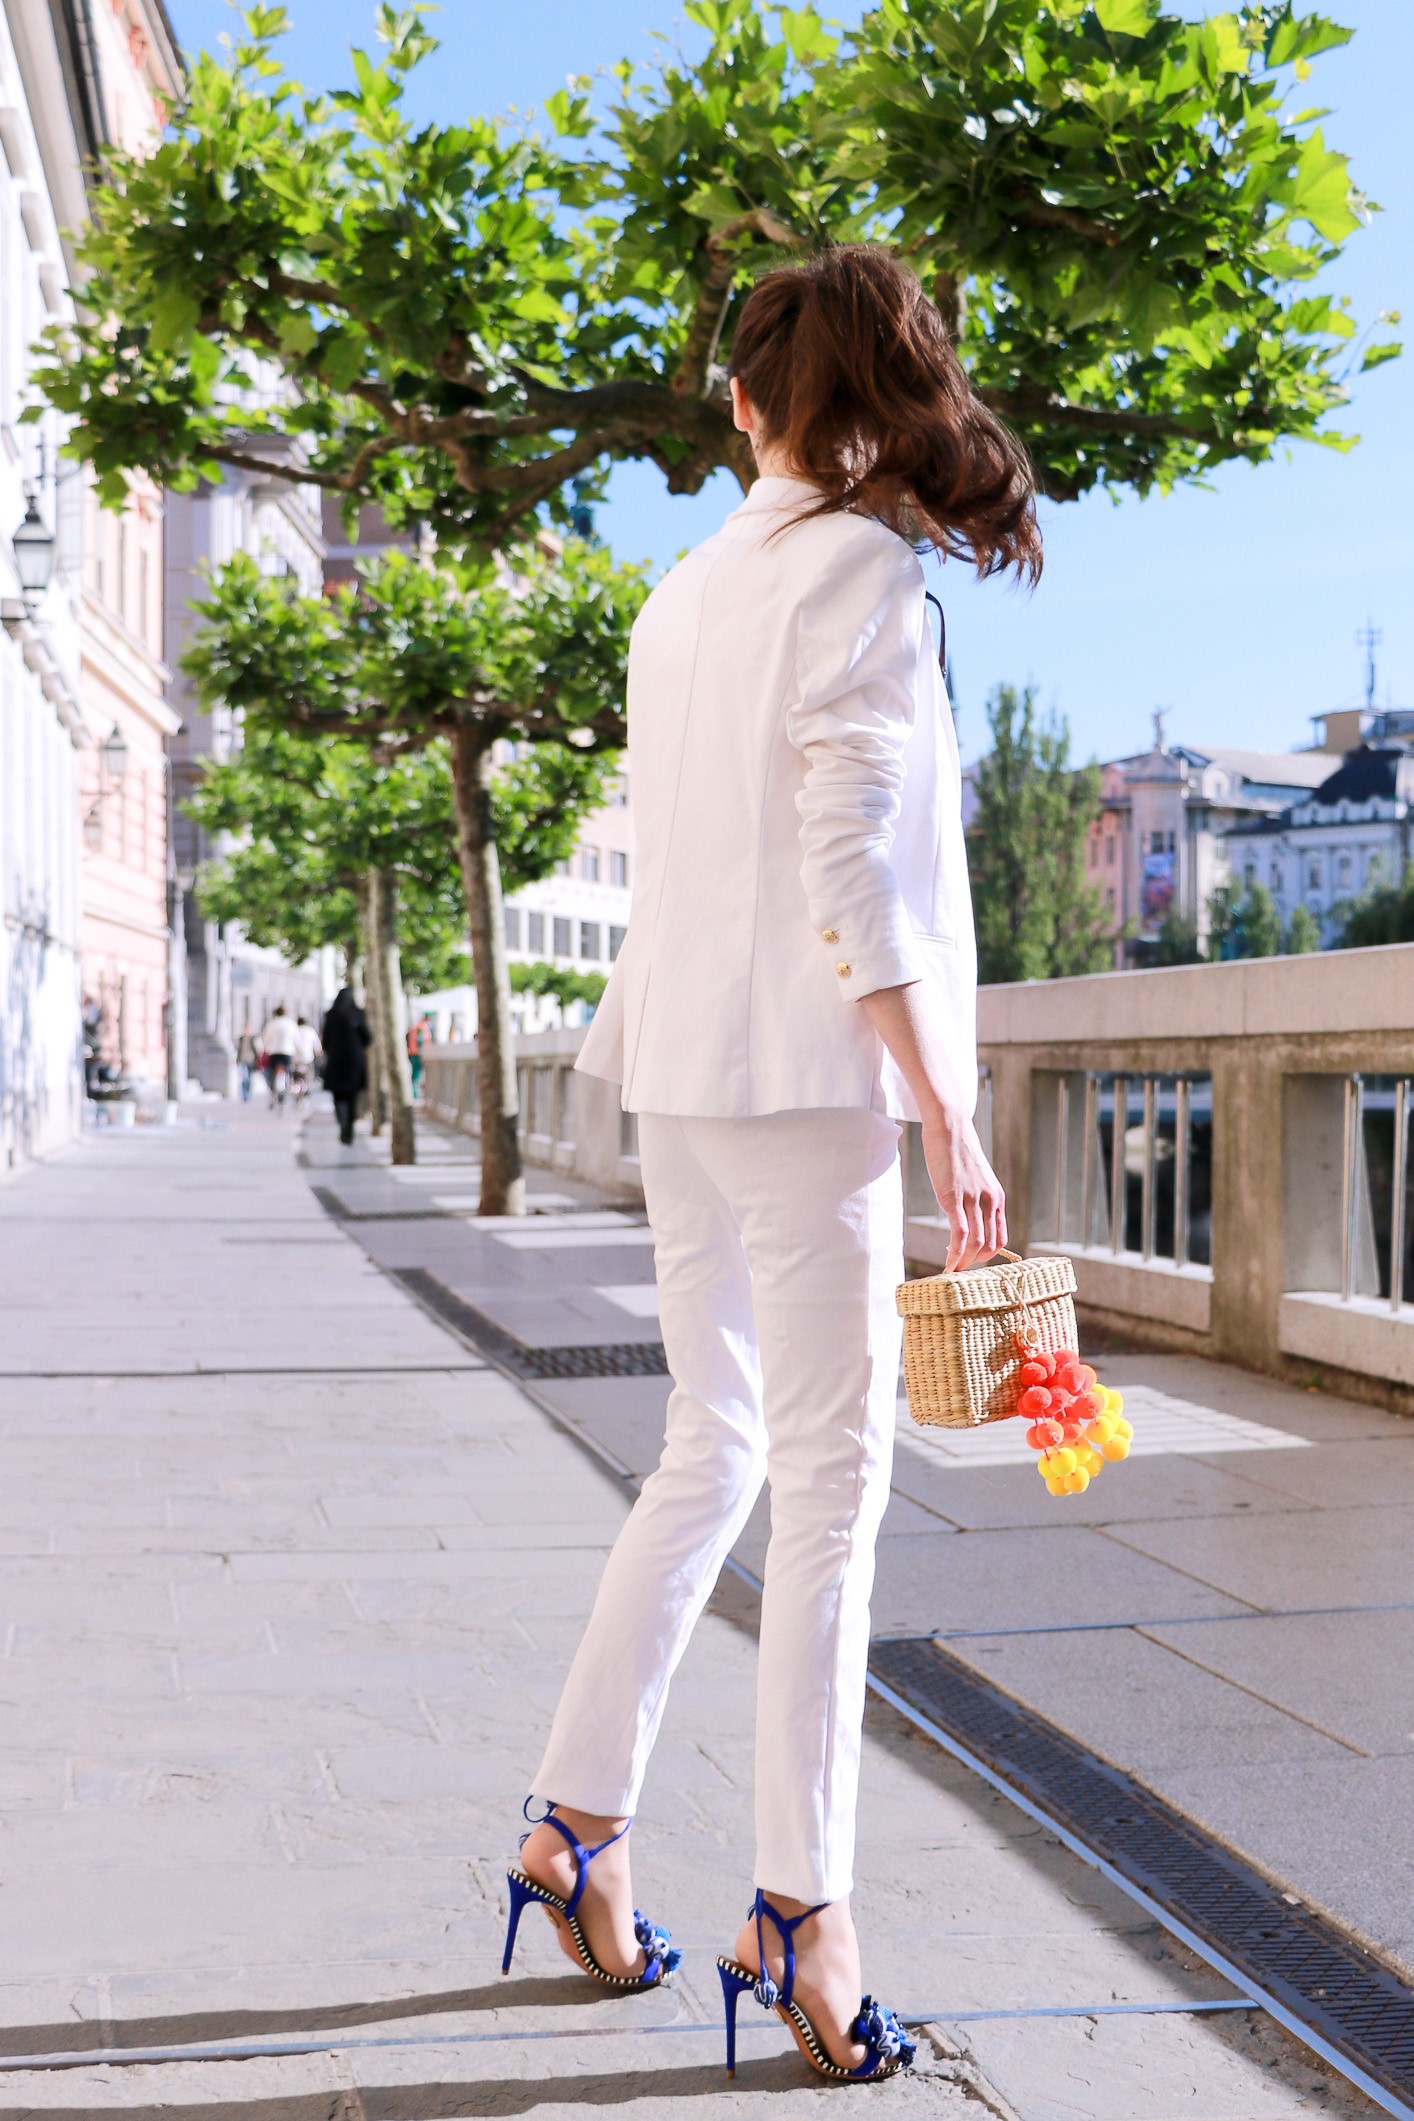 Fashion blogger Veronika Lipar of Brunette From Wall Street sharing fashionable business casual white outfit